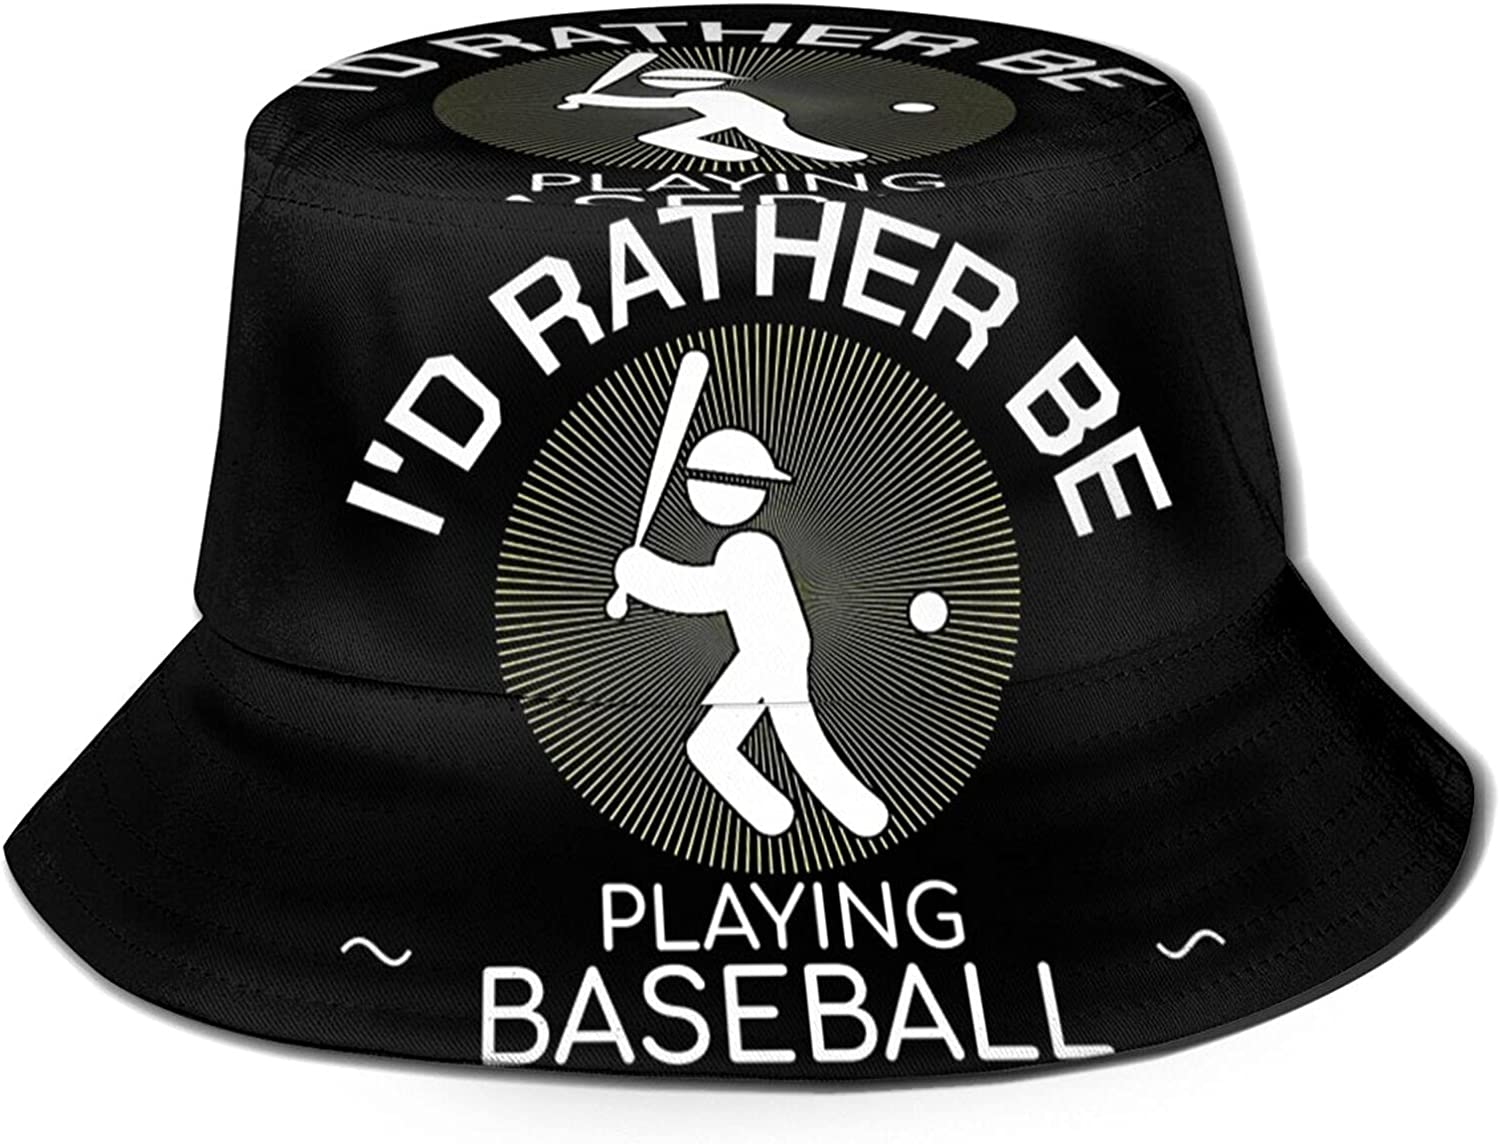 I'd Rather Play Baseball Bucket Limited time cheap sale Summer Hat Unisex Today's only Sun Packab